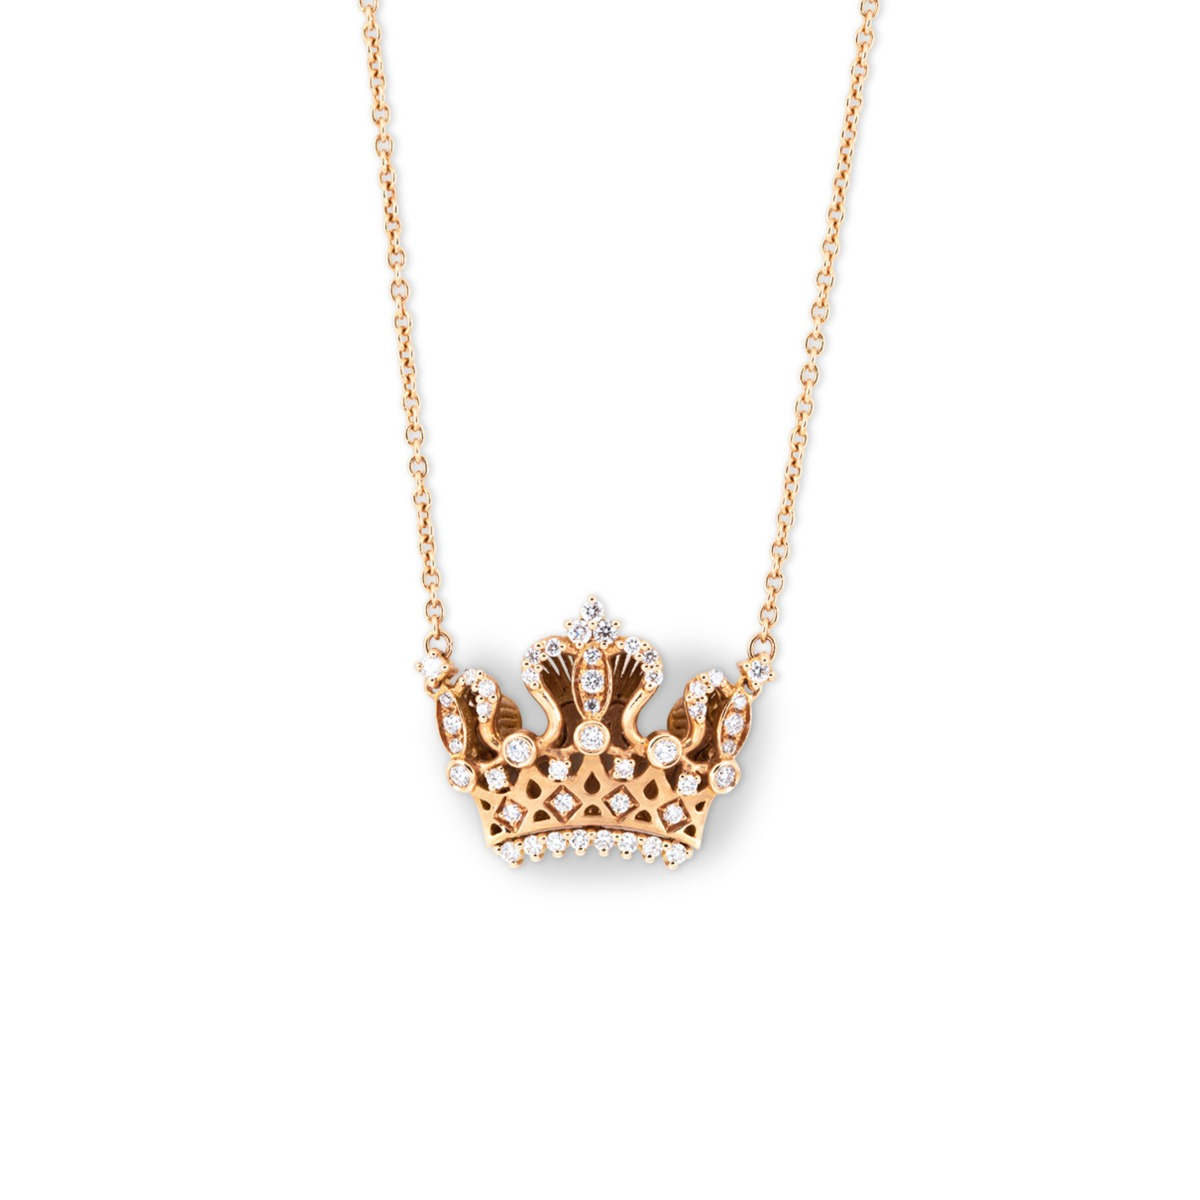 Rose Gold Crown Necklace with Diamonds